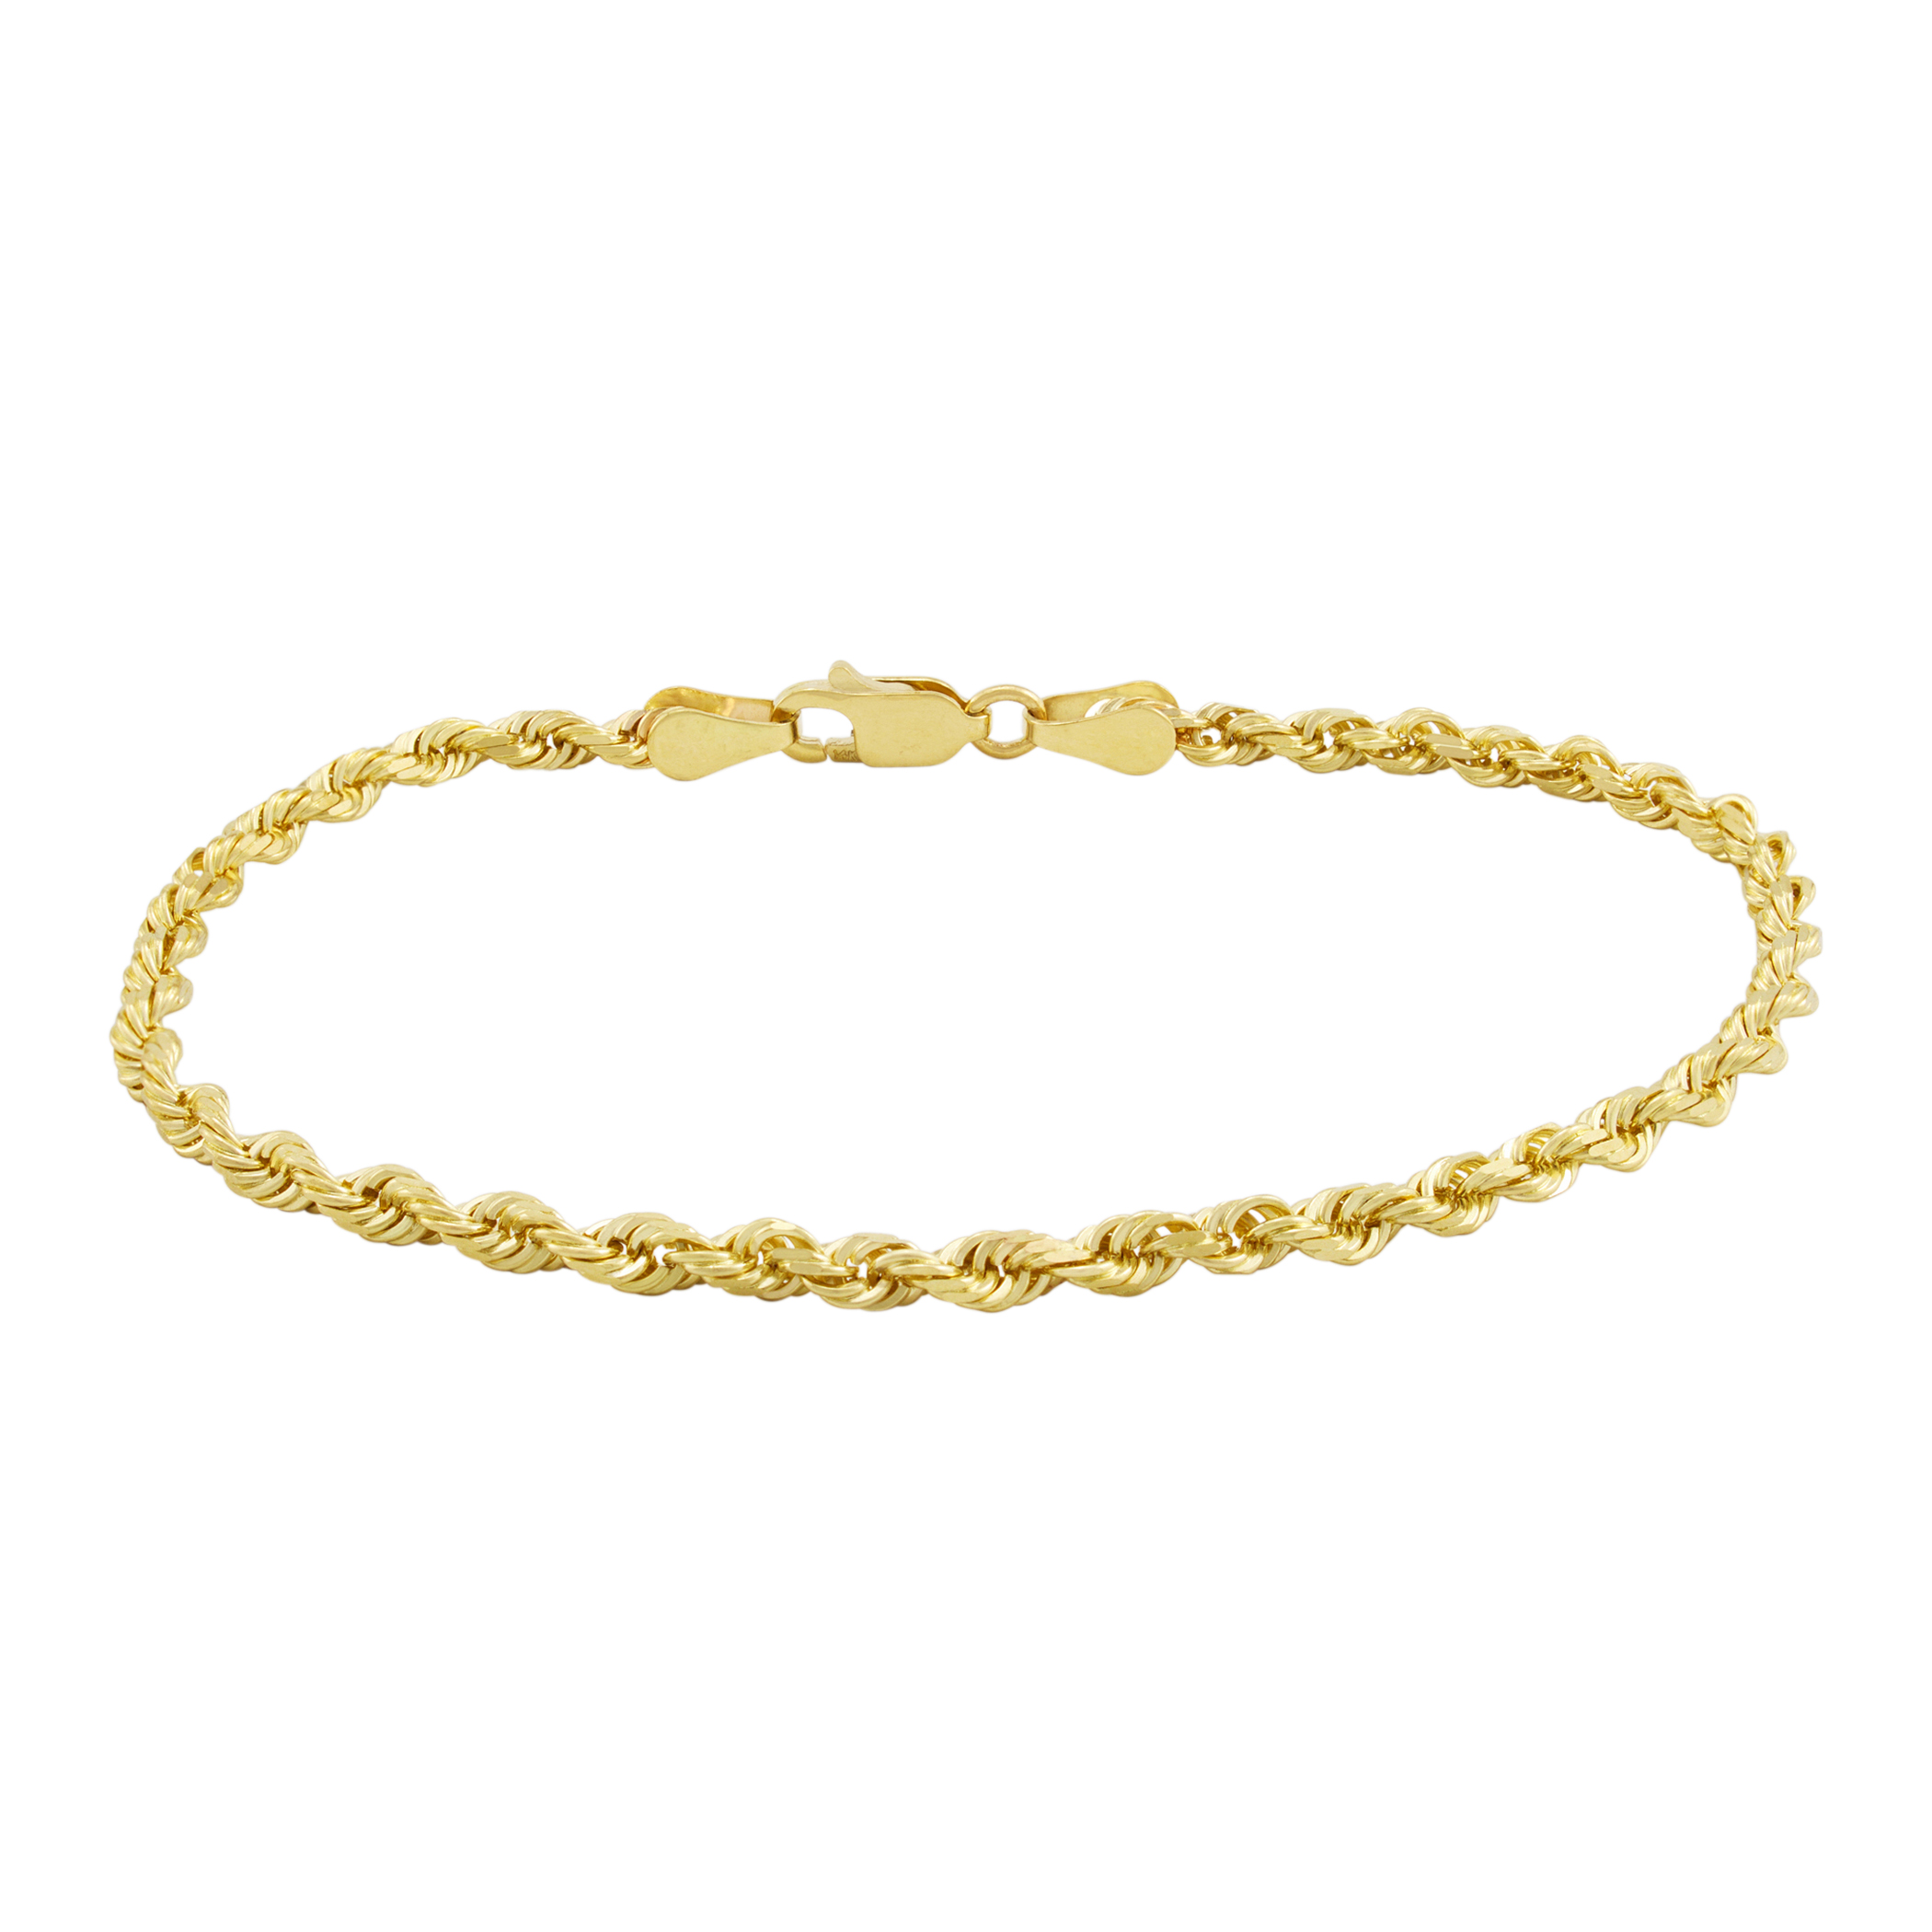 Real-14K-Yellow-Gold-2-5mm-Diamond-Cut-Rope-Chain-Link-Bracelet-Anklet-7-034-8-034-9-034 thumbnail 13